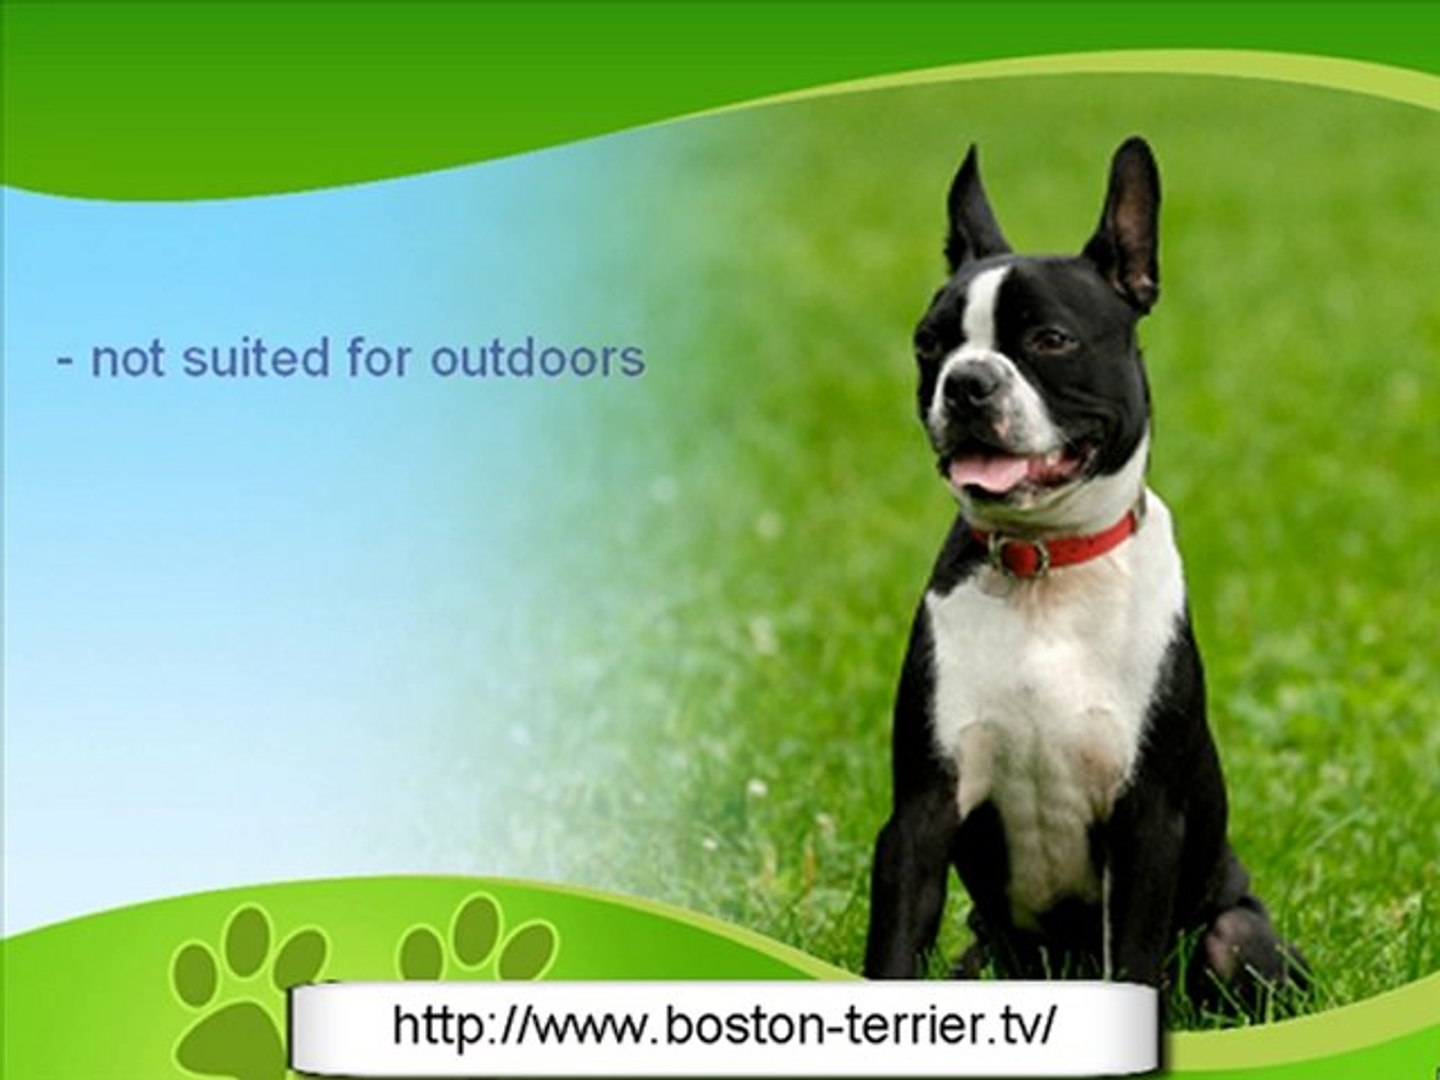 Boston Terrier Facts